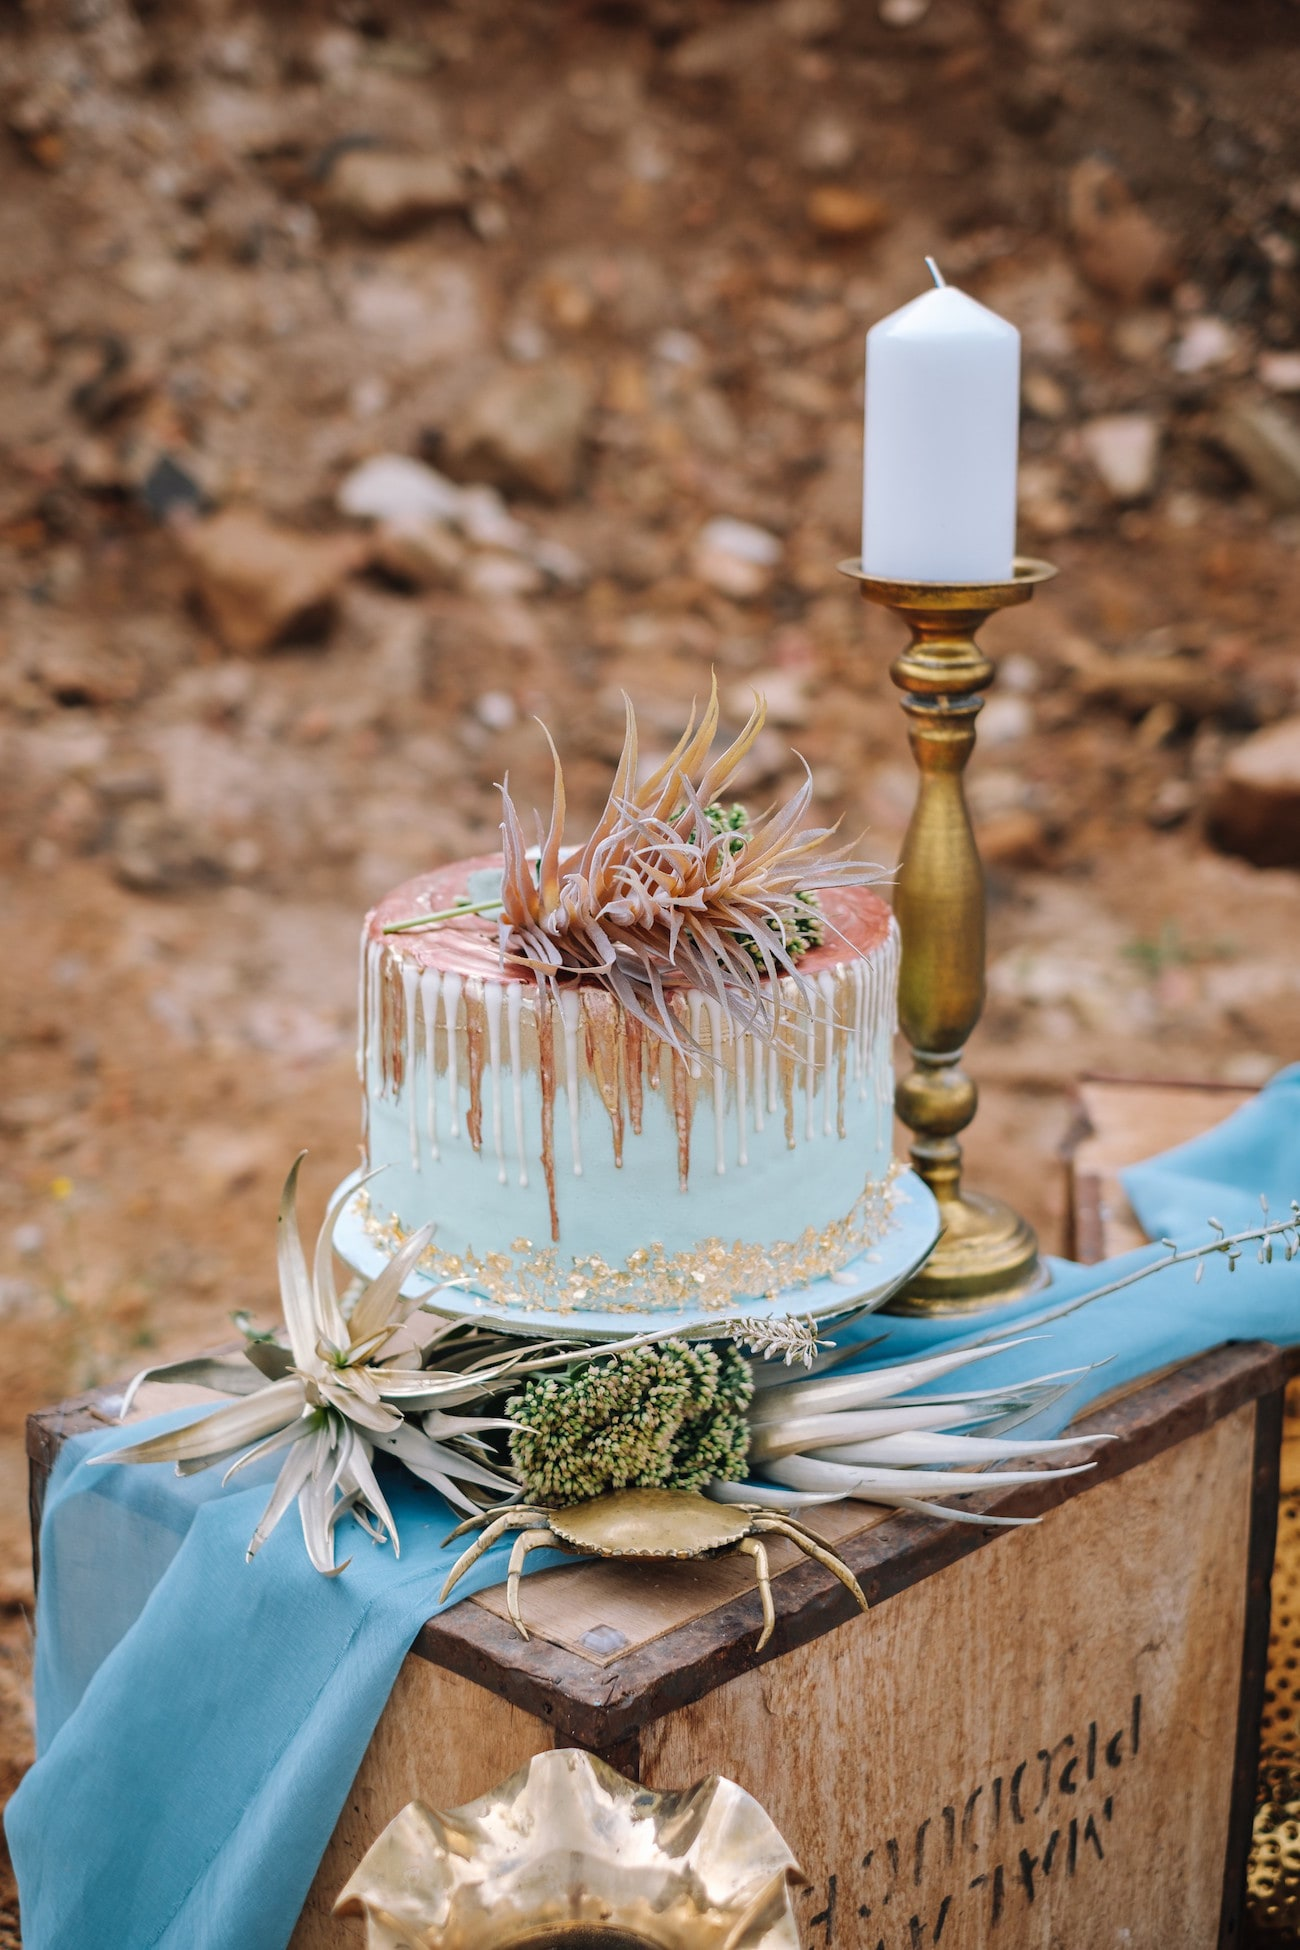 Gold & Copper Pastel Drip Cake | Atmospheric Wedding Inspiration | Credit: The Shank Tank